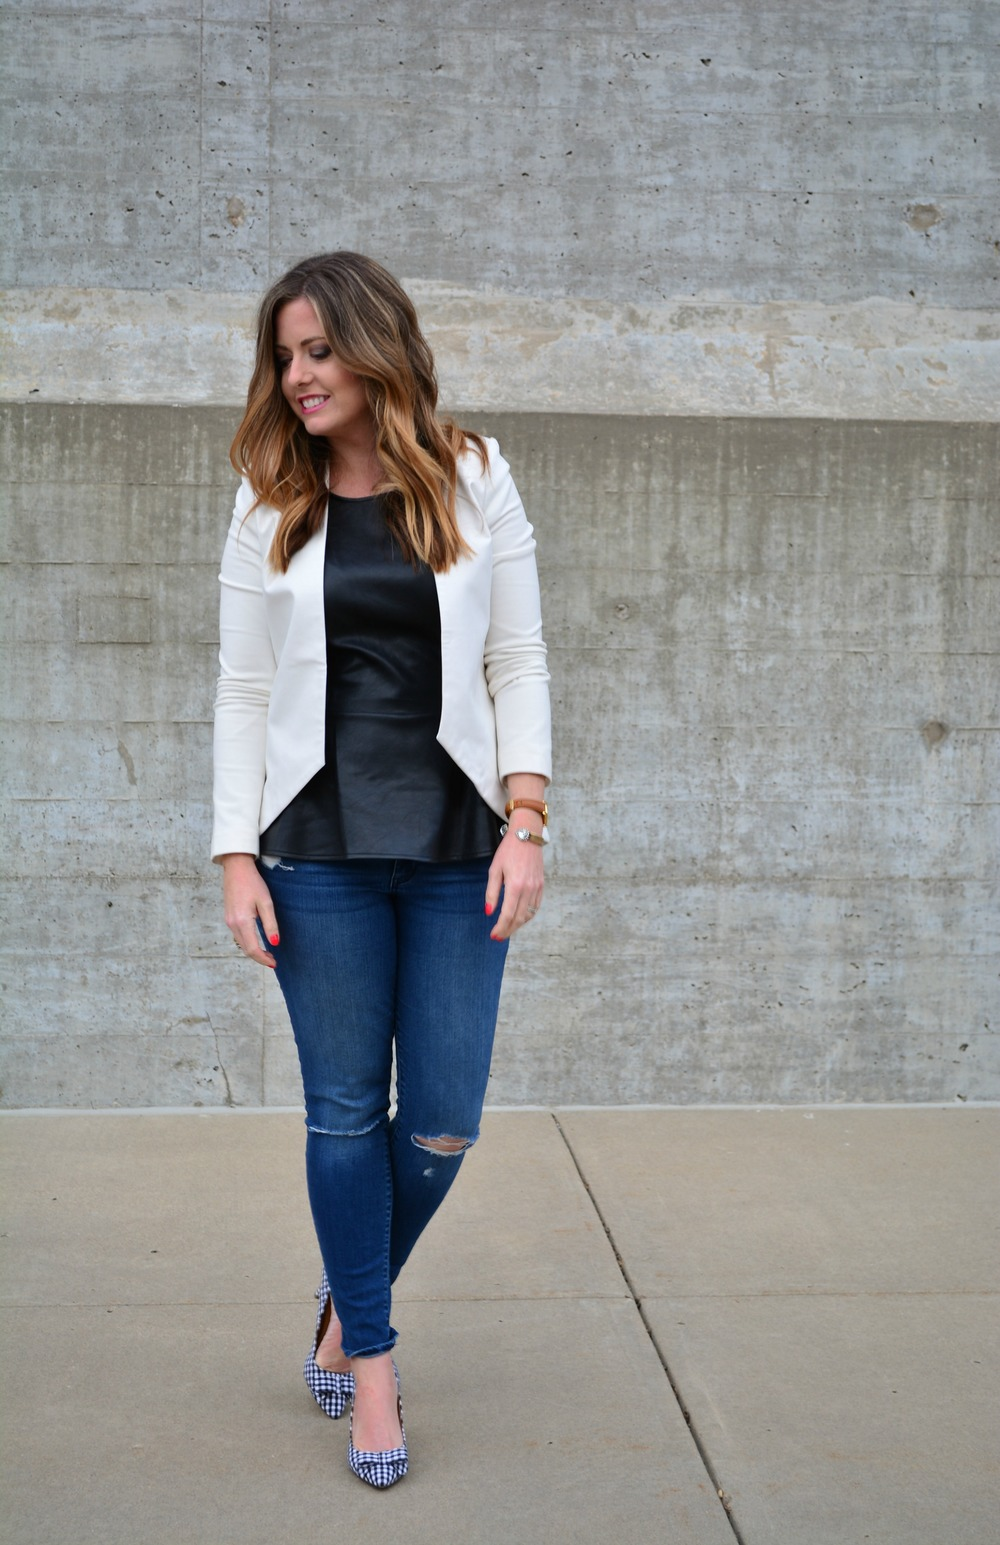 Black and white outfit for spring